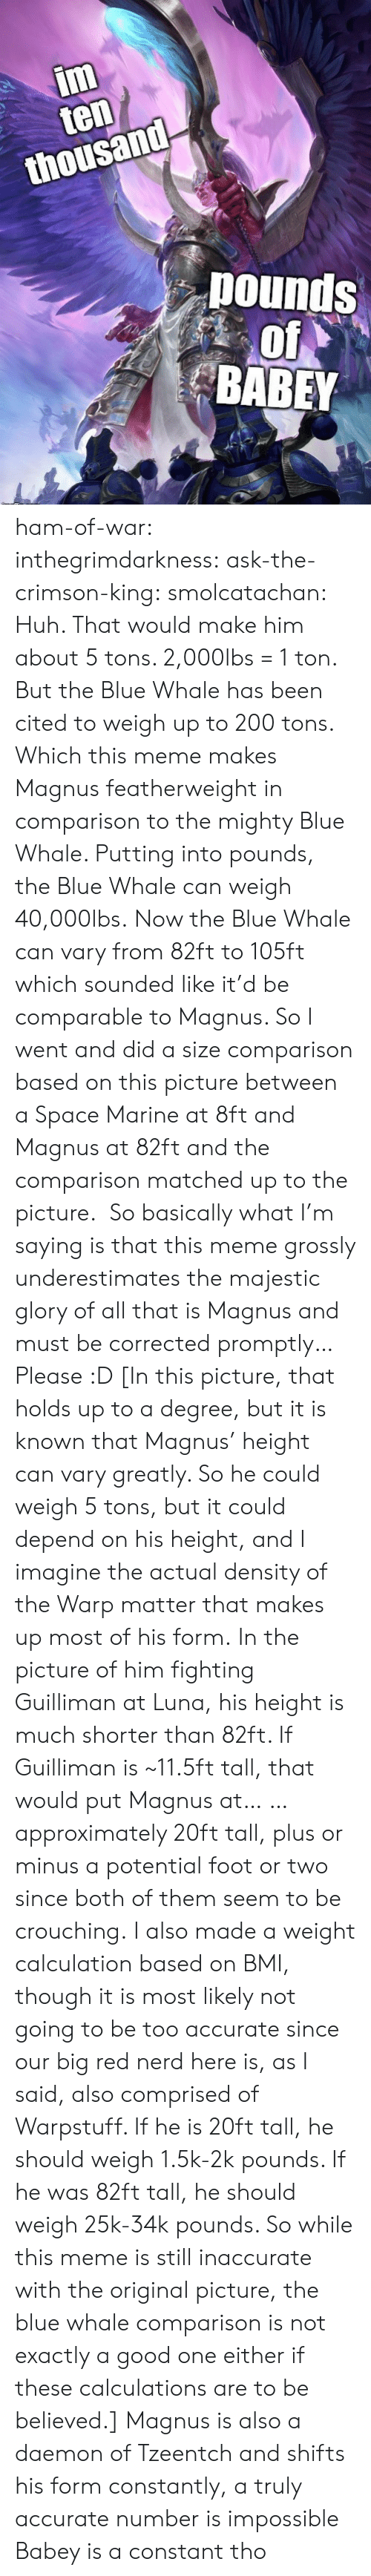 constant: im  ten  thousand  pounds  of  BABEY ham-of-war: inthegrimdarkness:   ask-the-crimson-king:   smolcatachan:  Huh. That would make him about 5 tons. 2,000lbs = 1 ton. But the Blue Whale has been cited to weigh up to 200 tons. Which this meme makes Magnus featherweight in comparison to the mighty Blue Whale. Putting into pounds, the Blue Whale can weigh 40,000lbs. Now the Blue Whale can vary from 82ft to 105ft which sounded like it'd be comparable to Magnus. So I went and did a size comparison based on this picture between a Space Marine at 8ft and Magnus at 82ft and the comparison matched up to the picture.  So basically what I'm saying is that this meme grossly underestimates the majestic glory of all that is Magnus and must be corrected promptly…Please :D  [In this picture, that holds up to a degree, but it is known that Magnus' height can vary greatly. So he could weigh 5 tons, but it could depend on his height, and I imagine the actual density of the Warp matter that makes up most of his form. In the picture of him fighting Guilliman at Luna, his height is much shorter than 82ft. If Guilliman is ~11.5ft tall, that would put Magnus at… … approximately 20ft tall, plus or minus a potential foot or two since both of them seem to be crouching. I also made a weight calculation based on BMI, though it is most likely not going to be too accurate since our big red nerd here is, as I said, also comprised of Warpstuff. If he is 20ft tall, he should weigh 1.5k-2k pounds. If he was 82ft tall, he should weigh 25k-34k pounds. So while this meme is still inaccurate with the original picture, the blue whale comparison is not exactly a good one either if these calculations are to be believed.]   Magnus is also a daemon of Tzeentch and shifts his form constantly, a truly accurate number is impossible    Babey is a constant tho